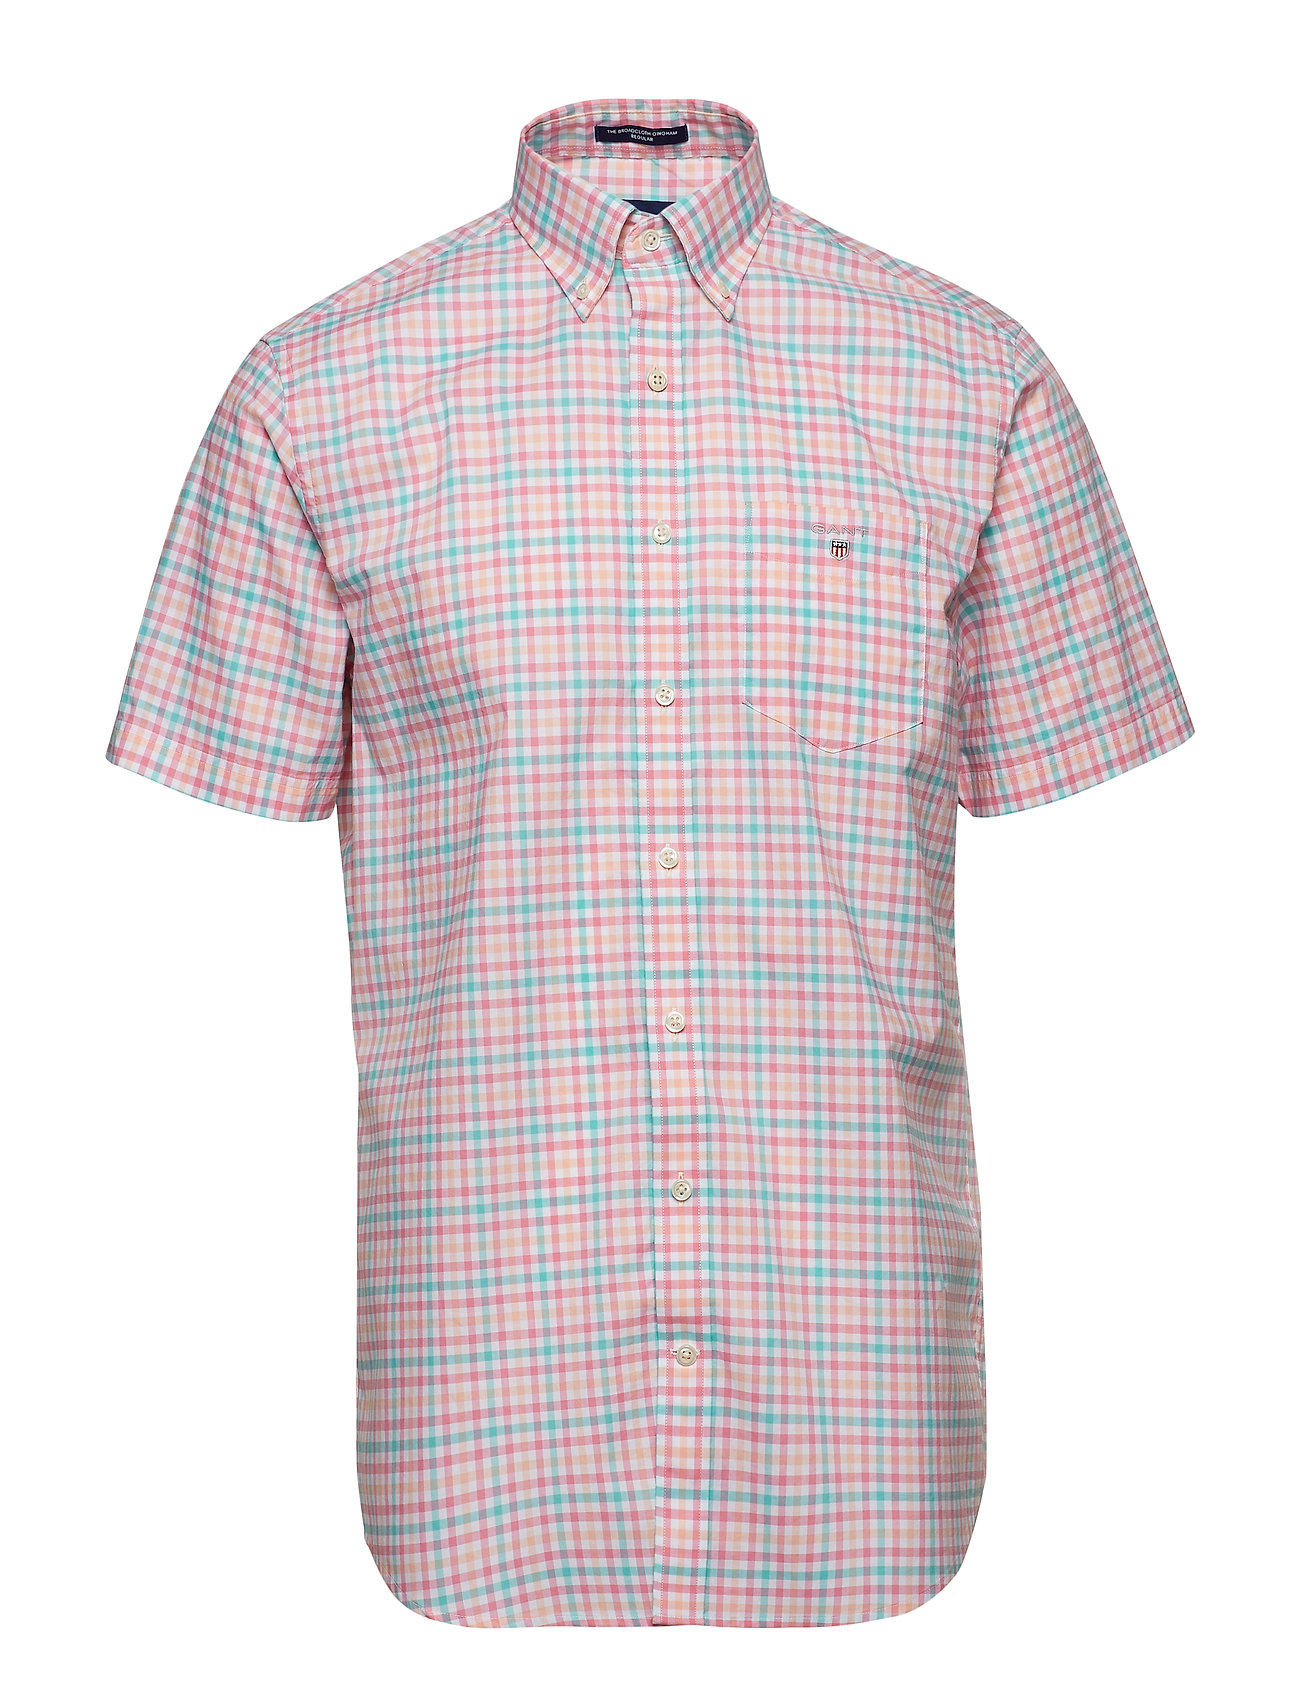 Gant THE B-CLOTH 3COL GINGHAM REG SS BD - PINK ROSE